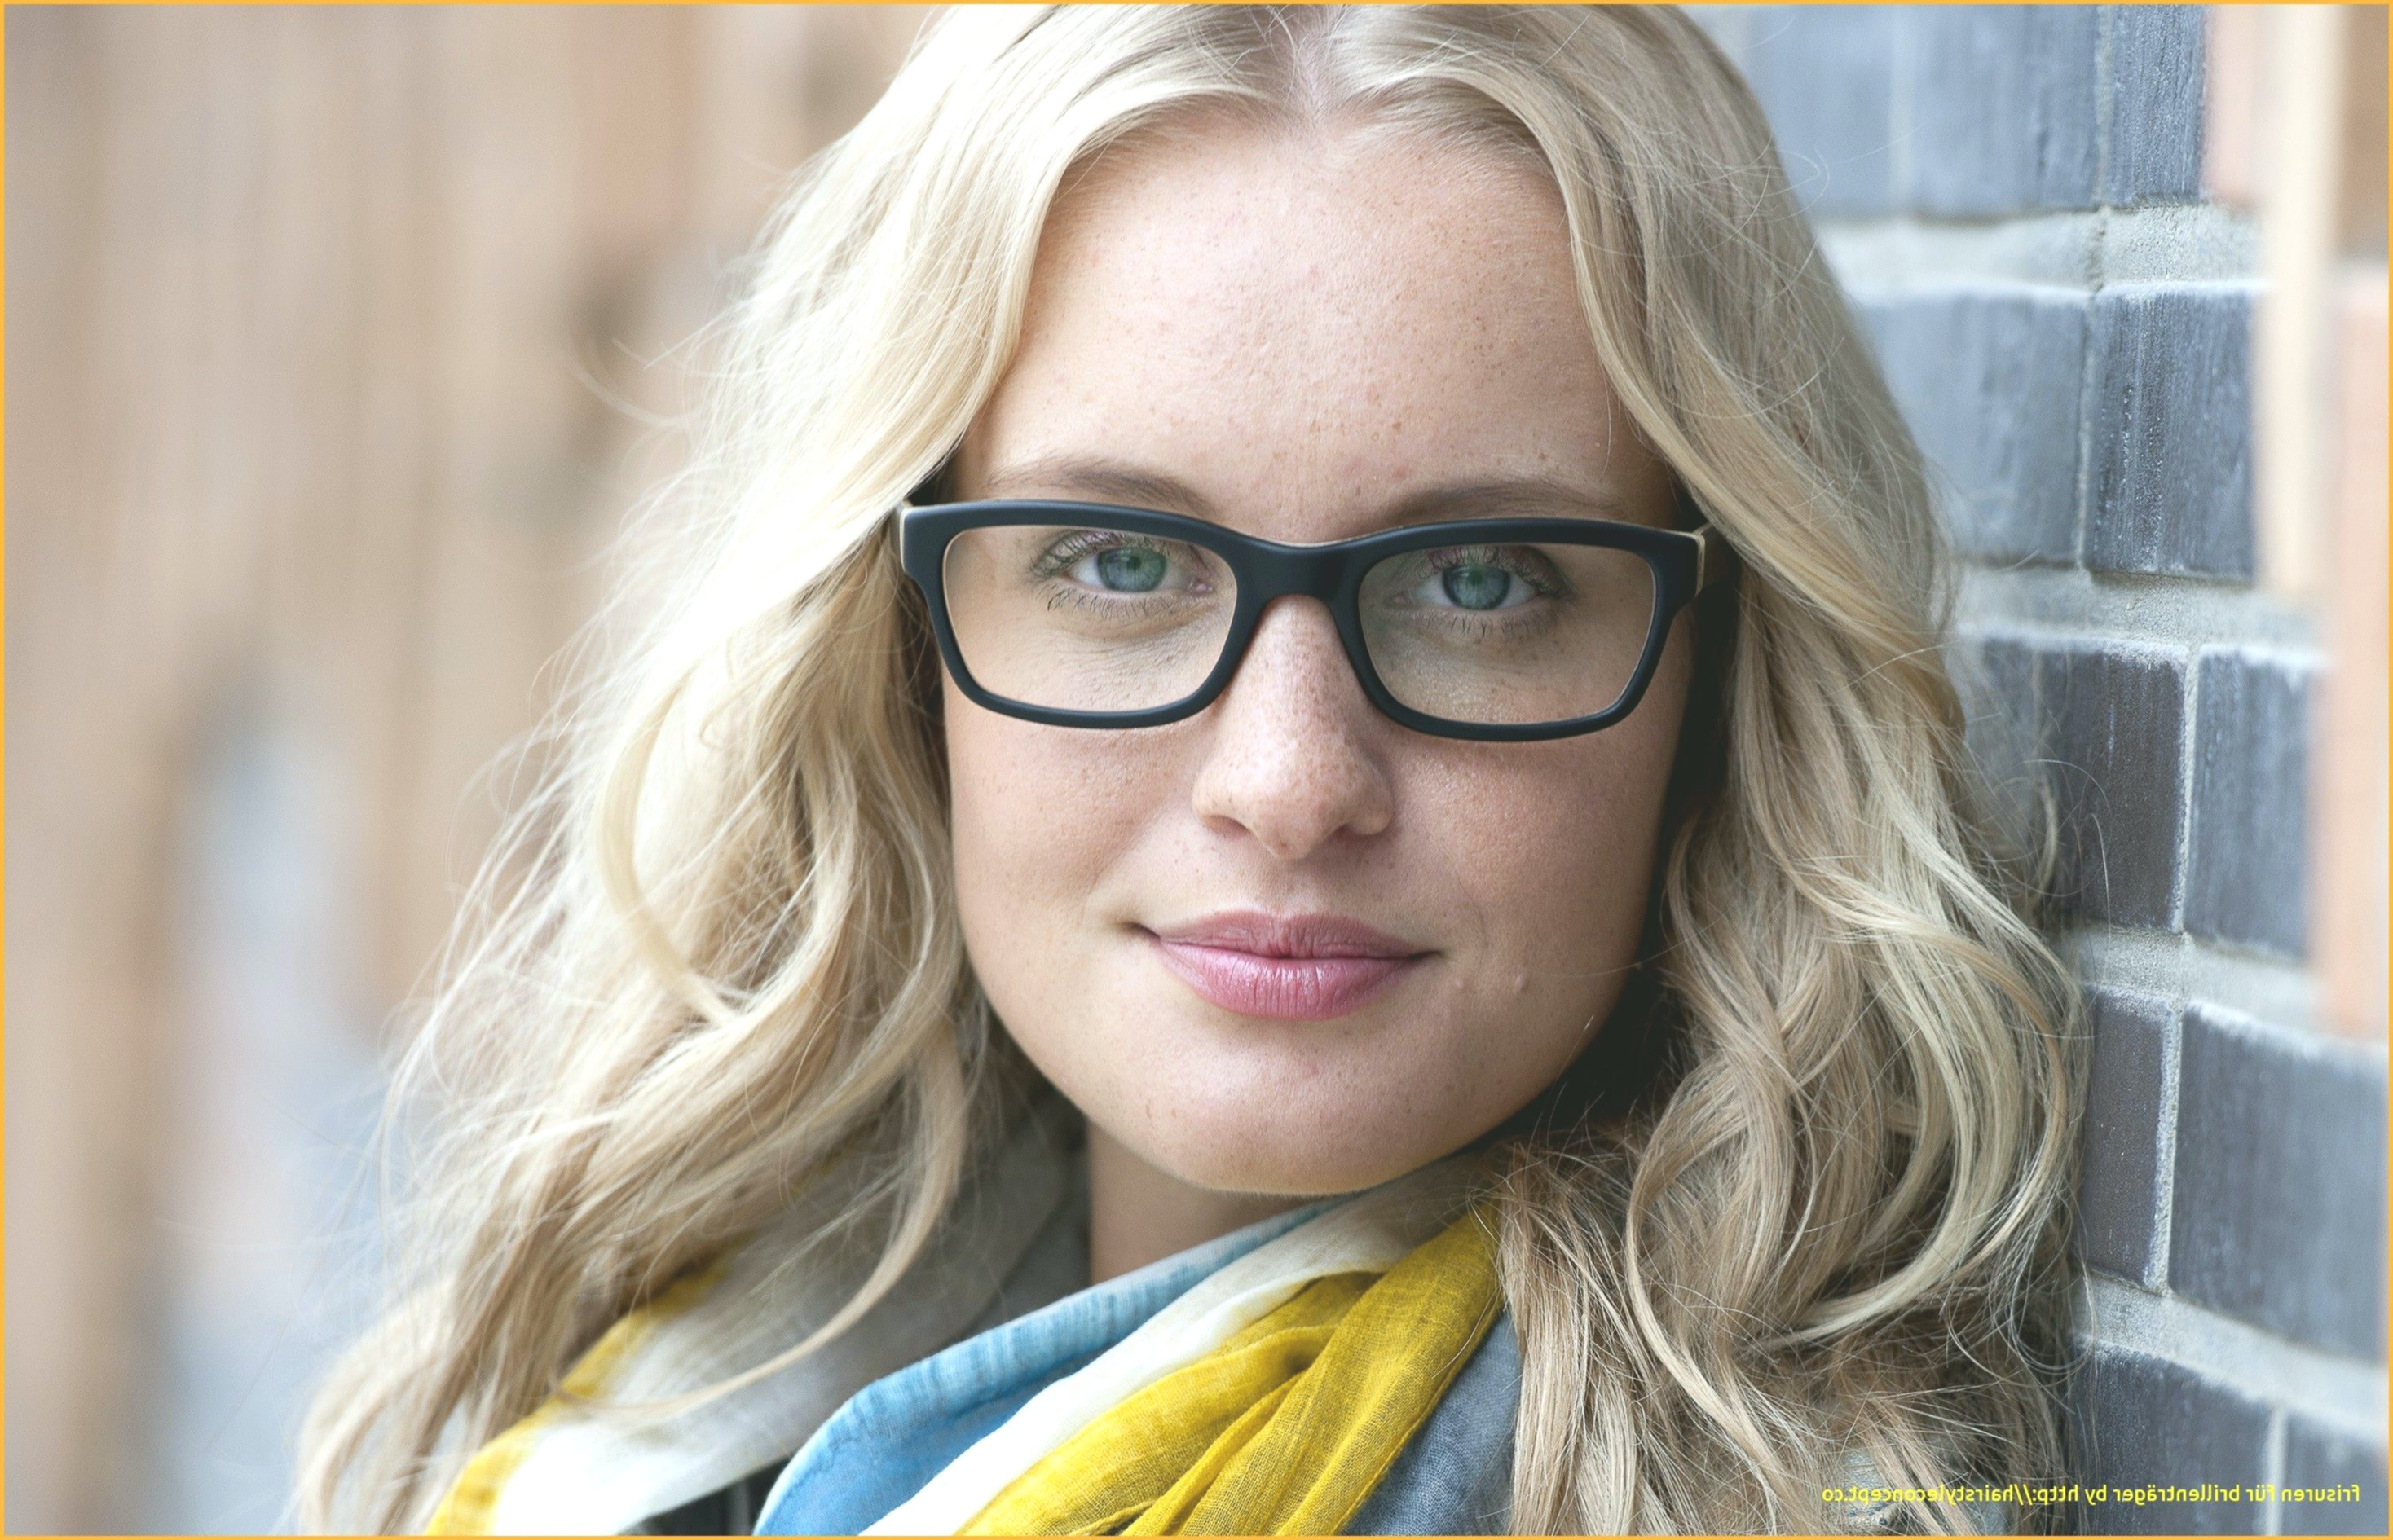 finest hairstyles for eyeglass wearers decor  hair style 2020